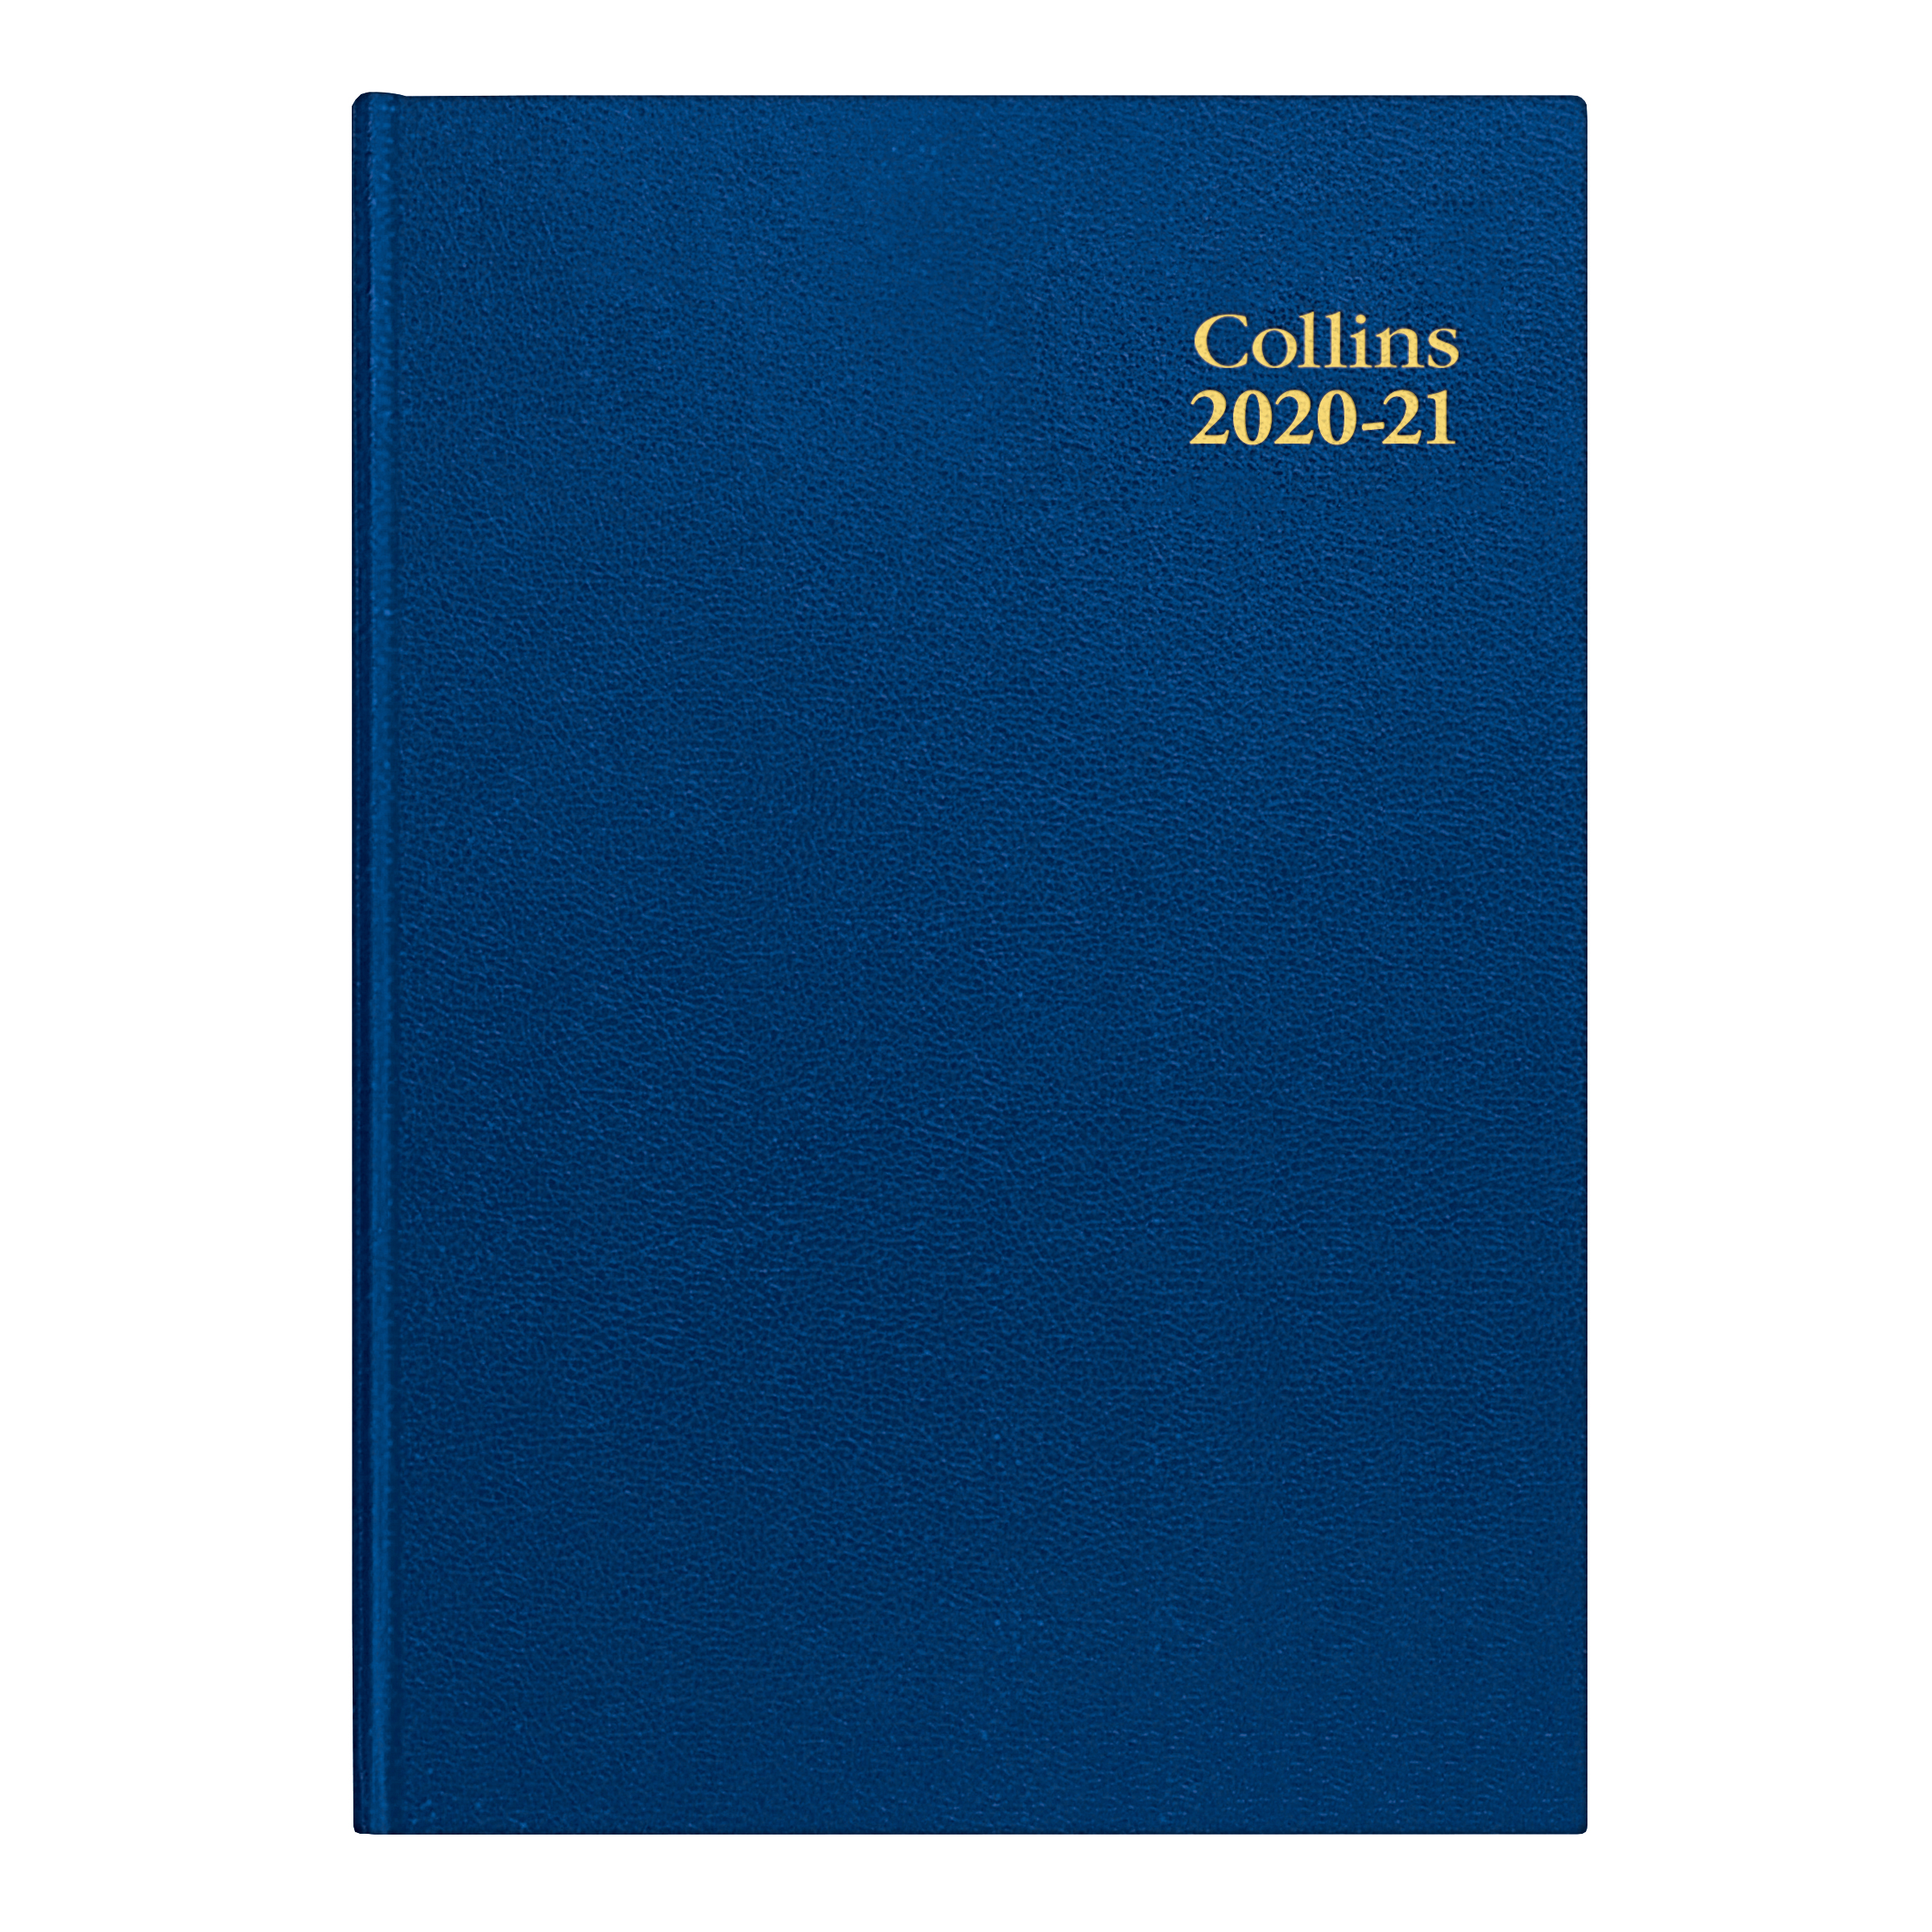 Diaries or refills Collins 2020/21 Academic Diary Day-to-Page A5 Ref 52M 2021